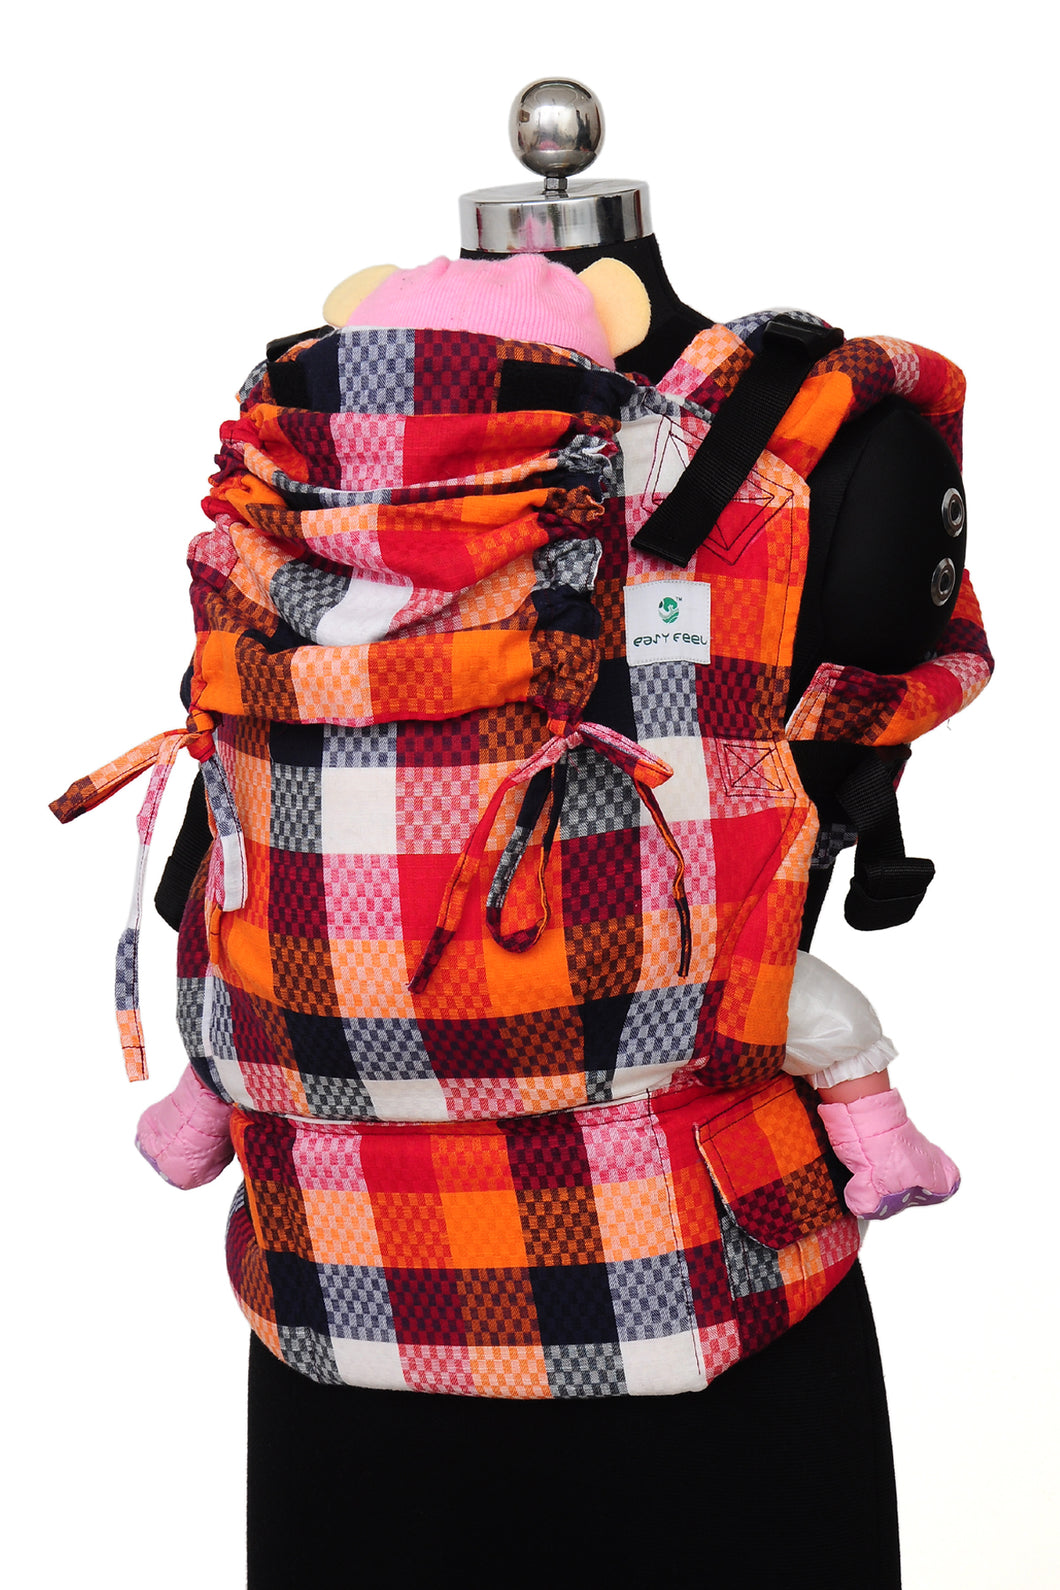 Easy Feel Full Buckle Ergonomic Soft Structured Carrier (Standard Size) - Sensation